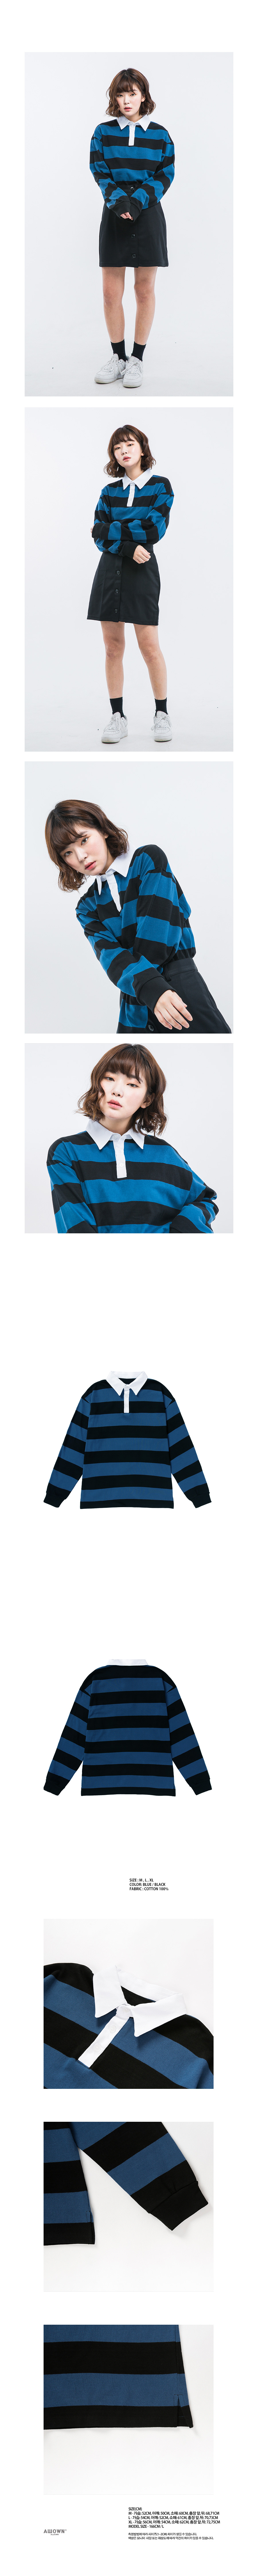 stripecollarshirts_blue.jpg